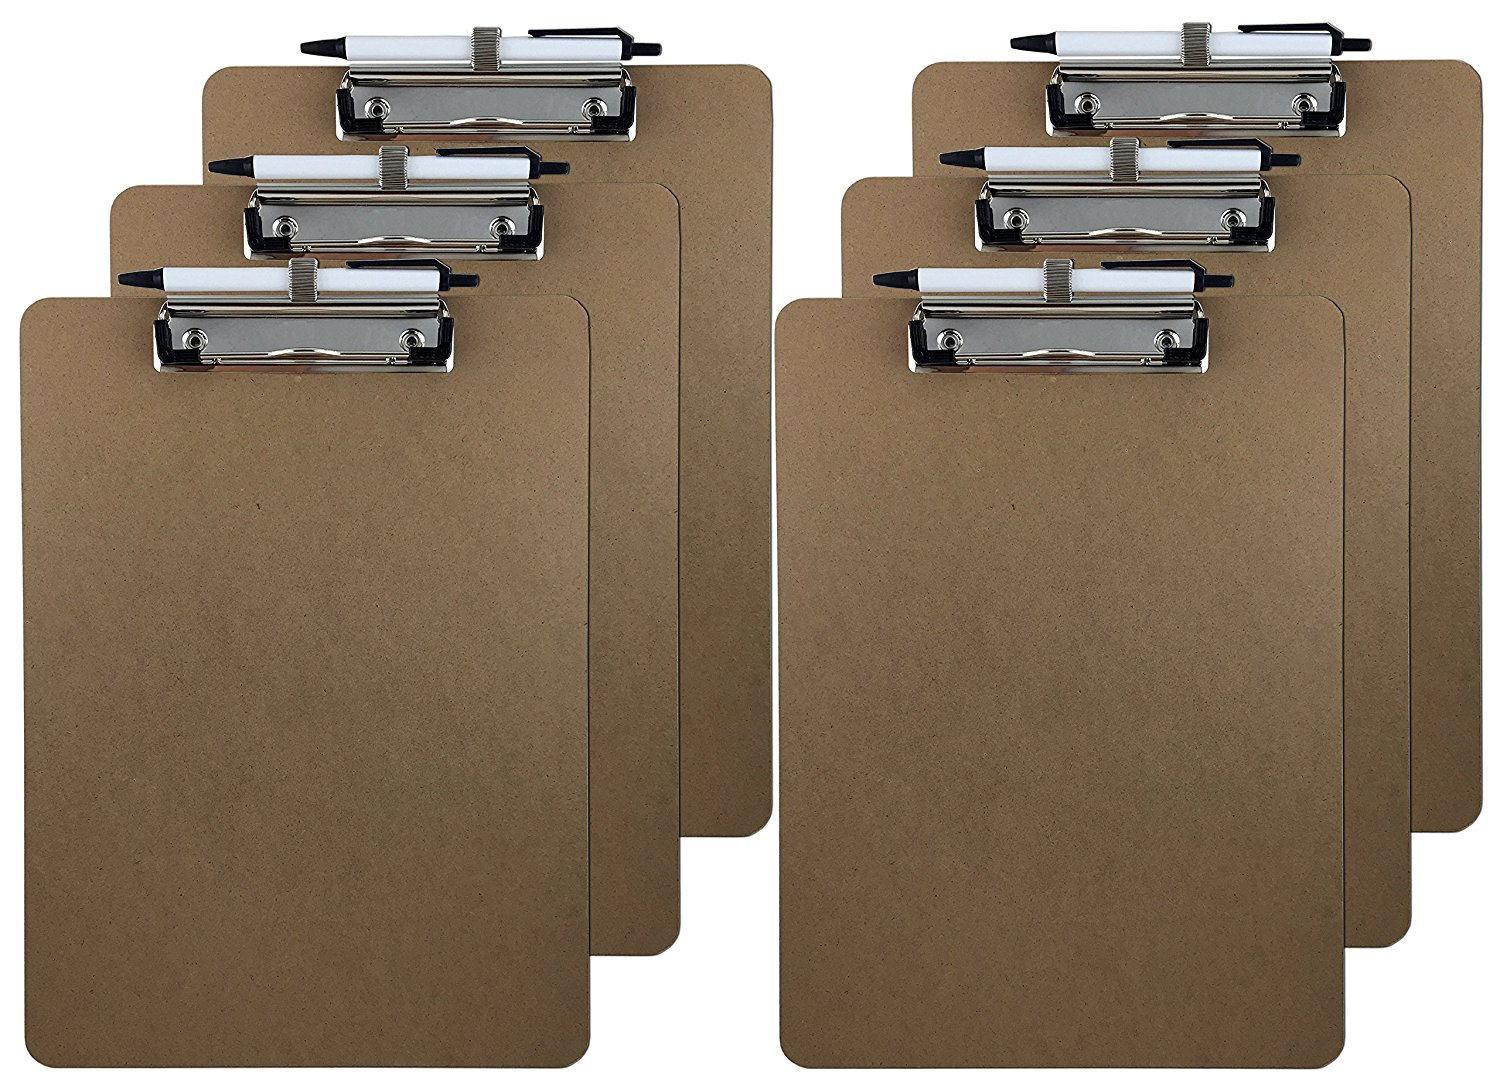 Most popular cheap personalized design durable clipboard folder, standard wooden hardboard size with pen holder